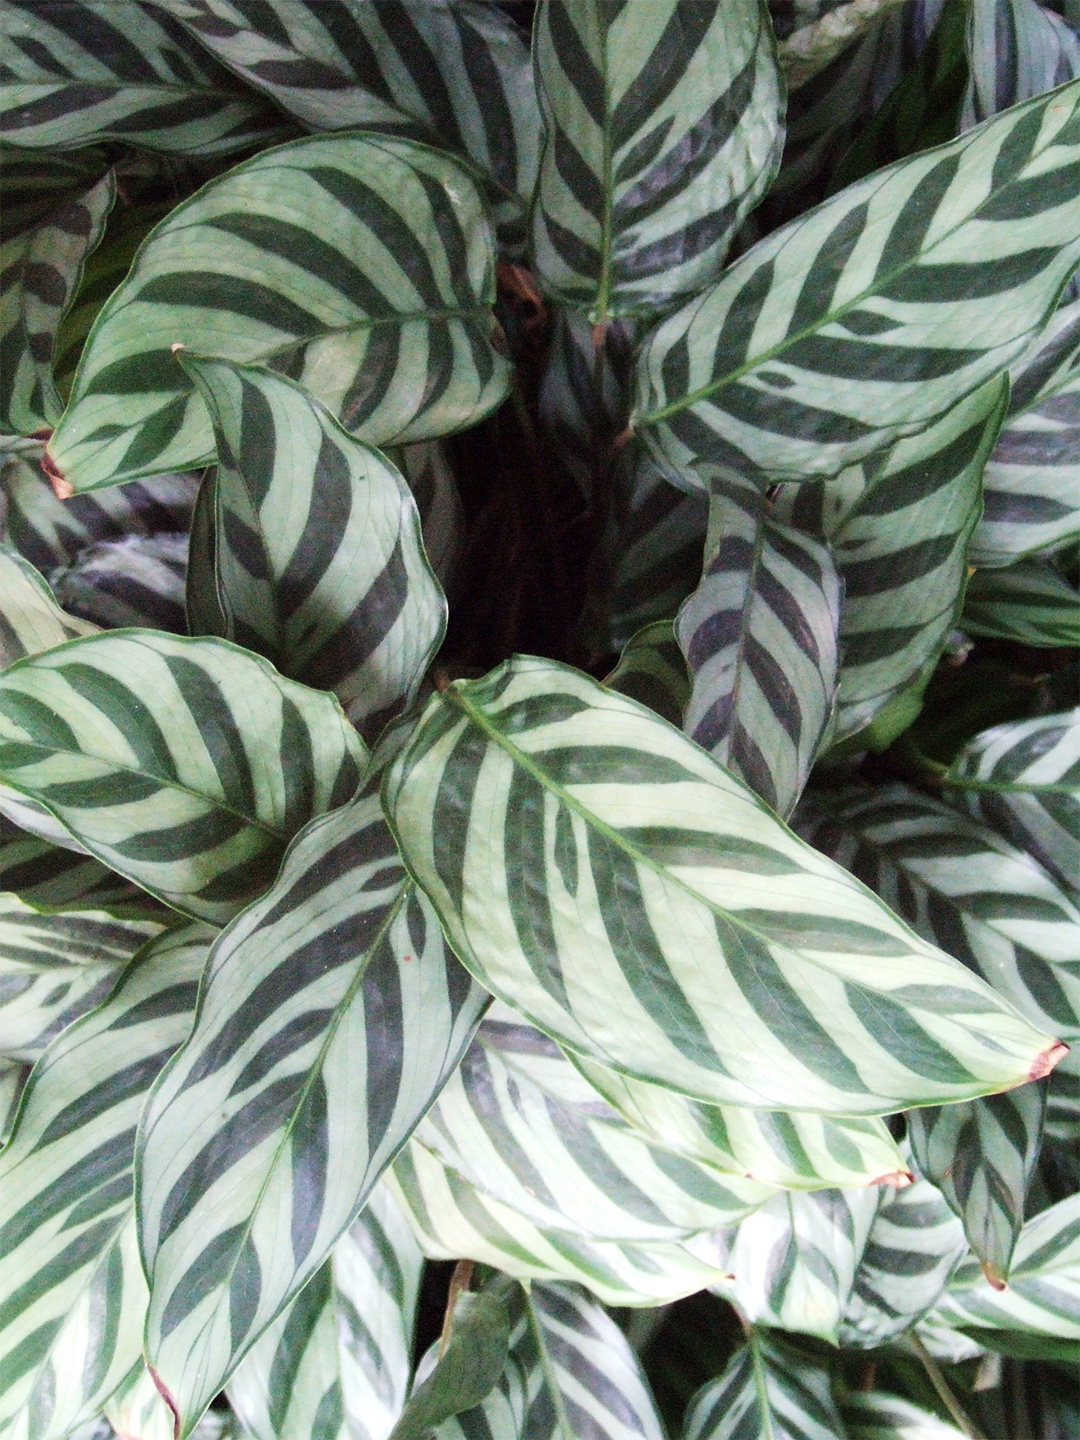 Calathea concinna plant with striped wide leaves